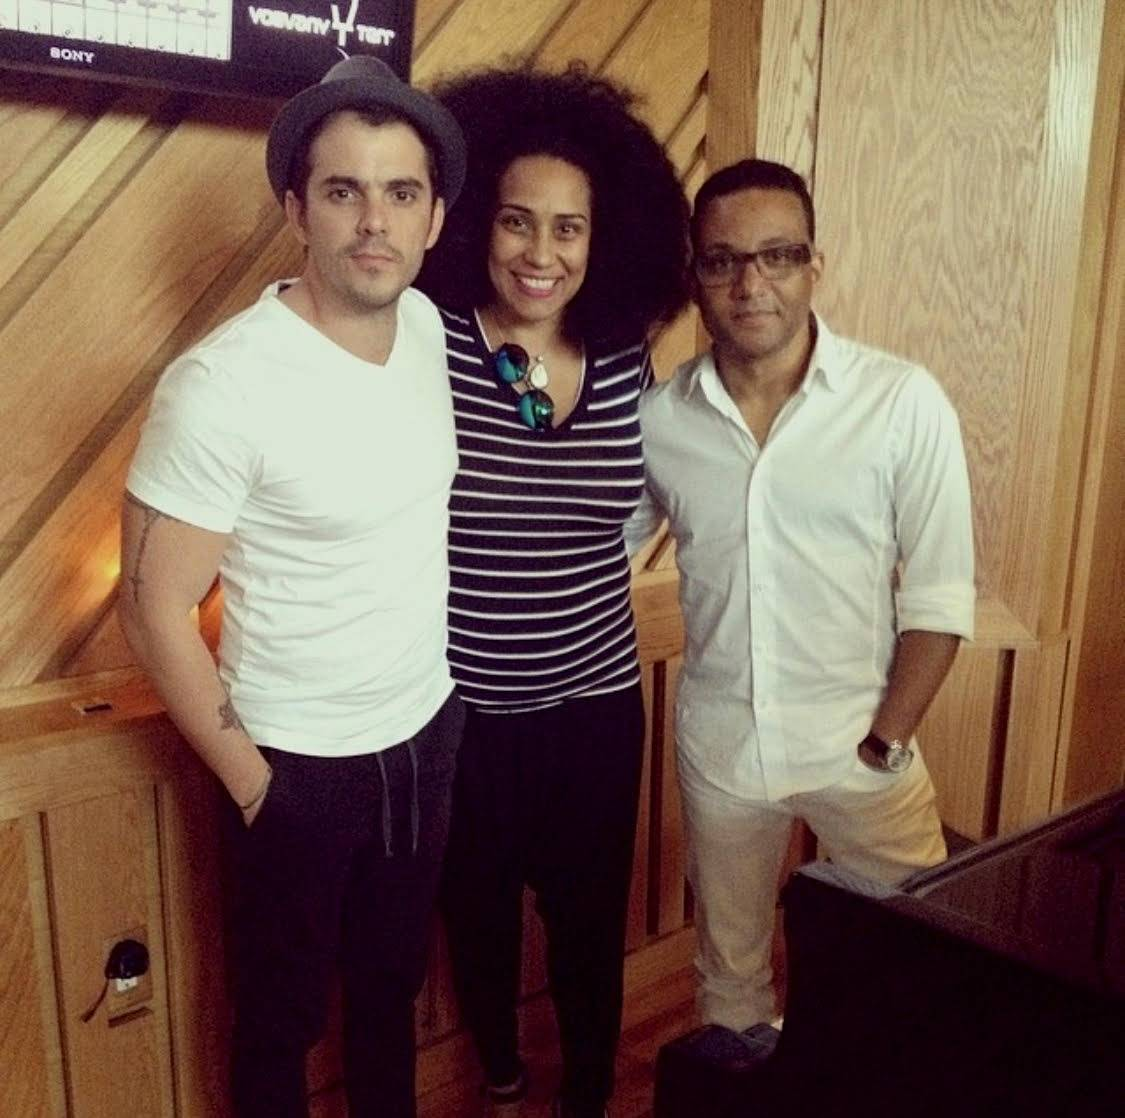 Pututi with Aymée Nuviola and Gonzalo Rubalcaba. Photo; Courtesy of the Interviewed